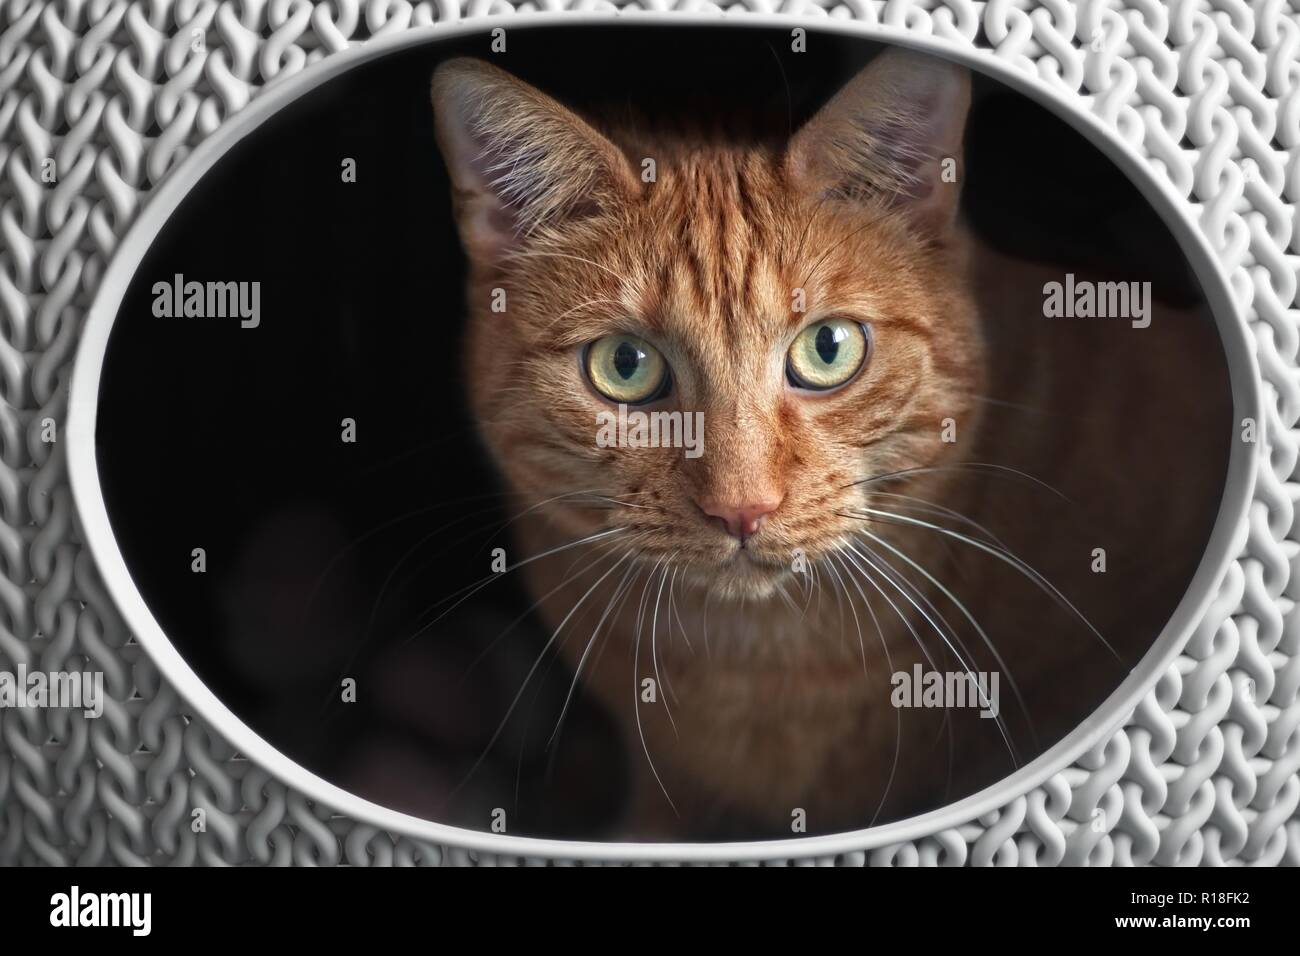 Cute ginger cat in a cat basket looking curious to the camera.. - Stock Image